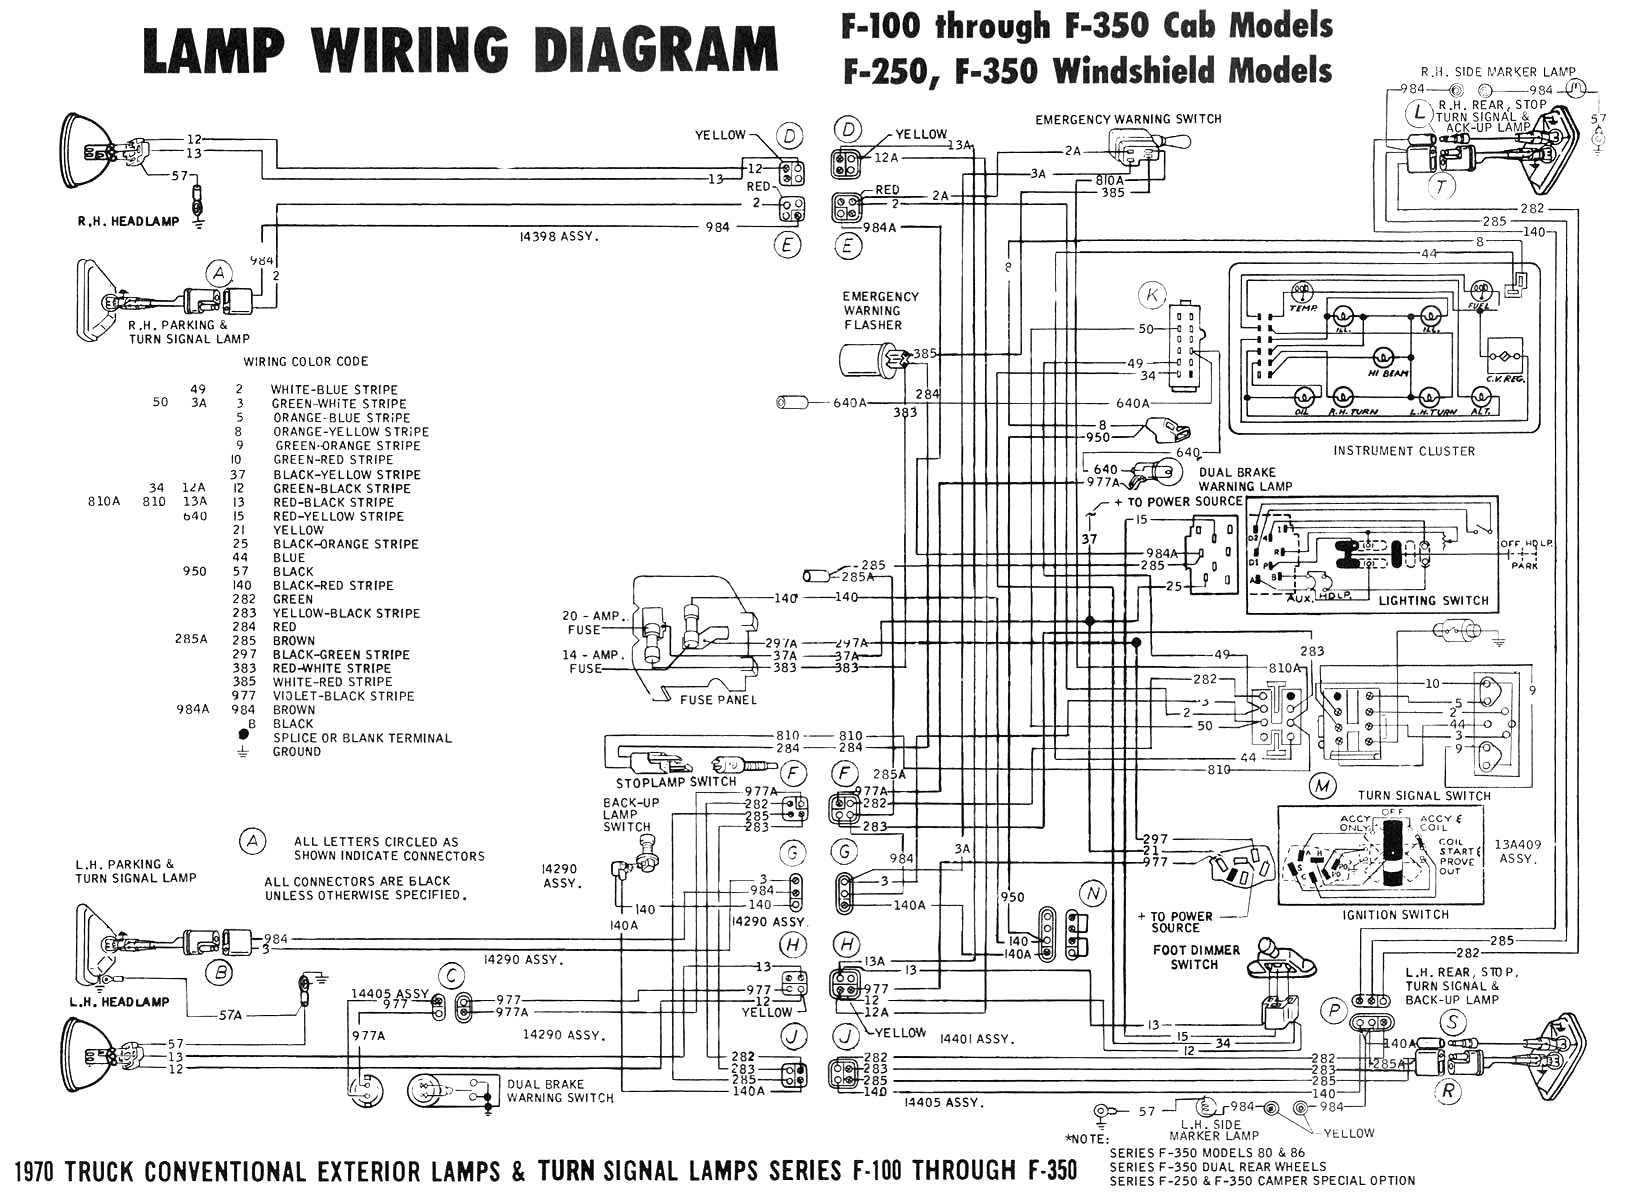 2005 pontiac grand prix o2 sensor electrical diagram moreover chevy 98 dodge dakota radio wiring harness